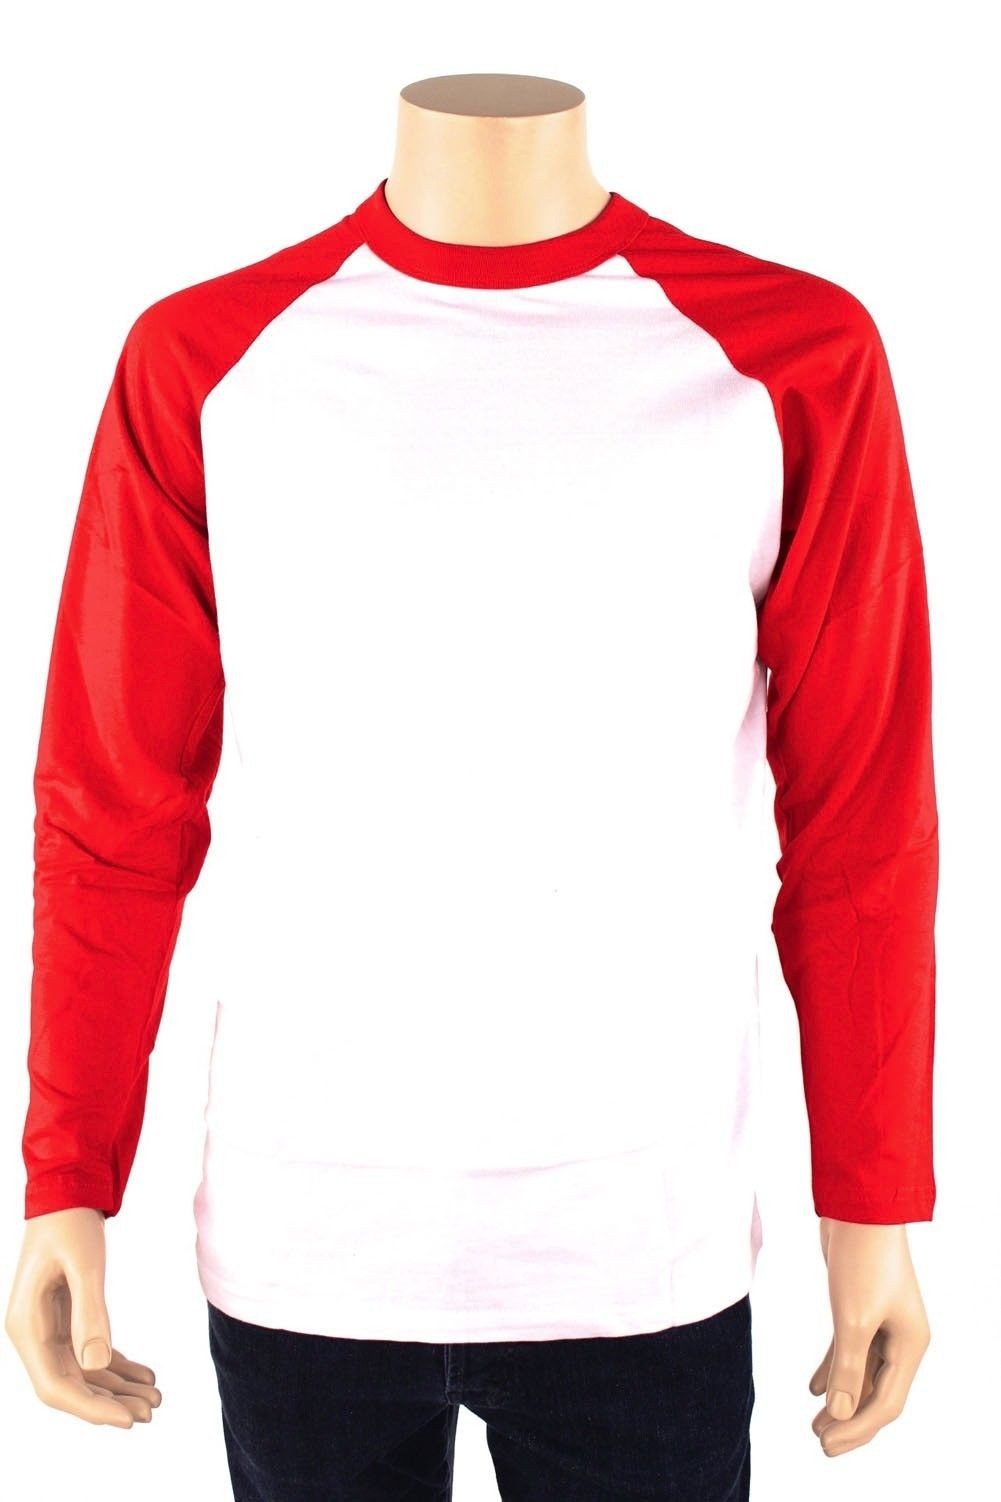 Men's Long Sleeve Raglan Baseball Shirt